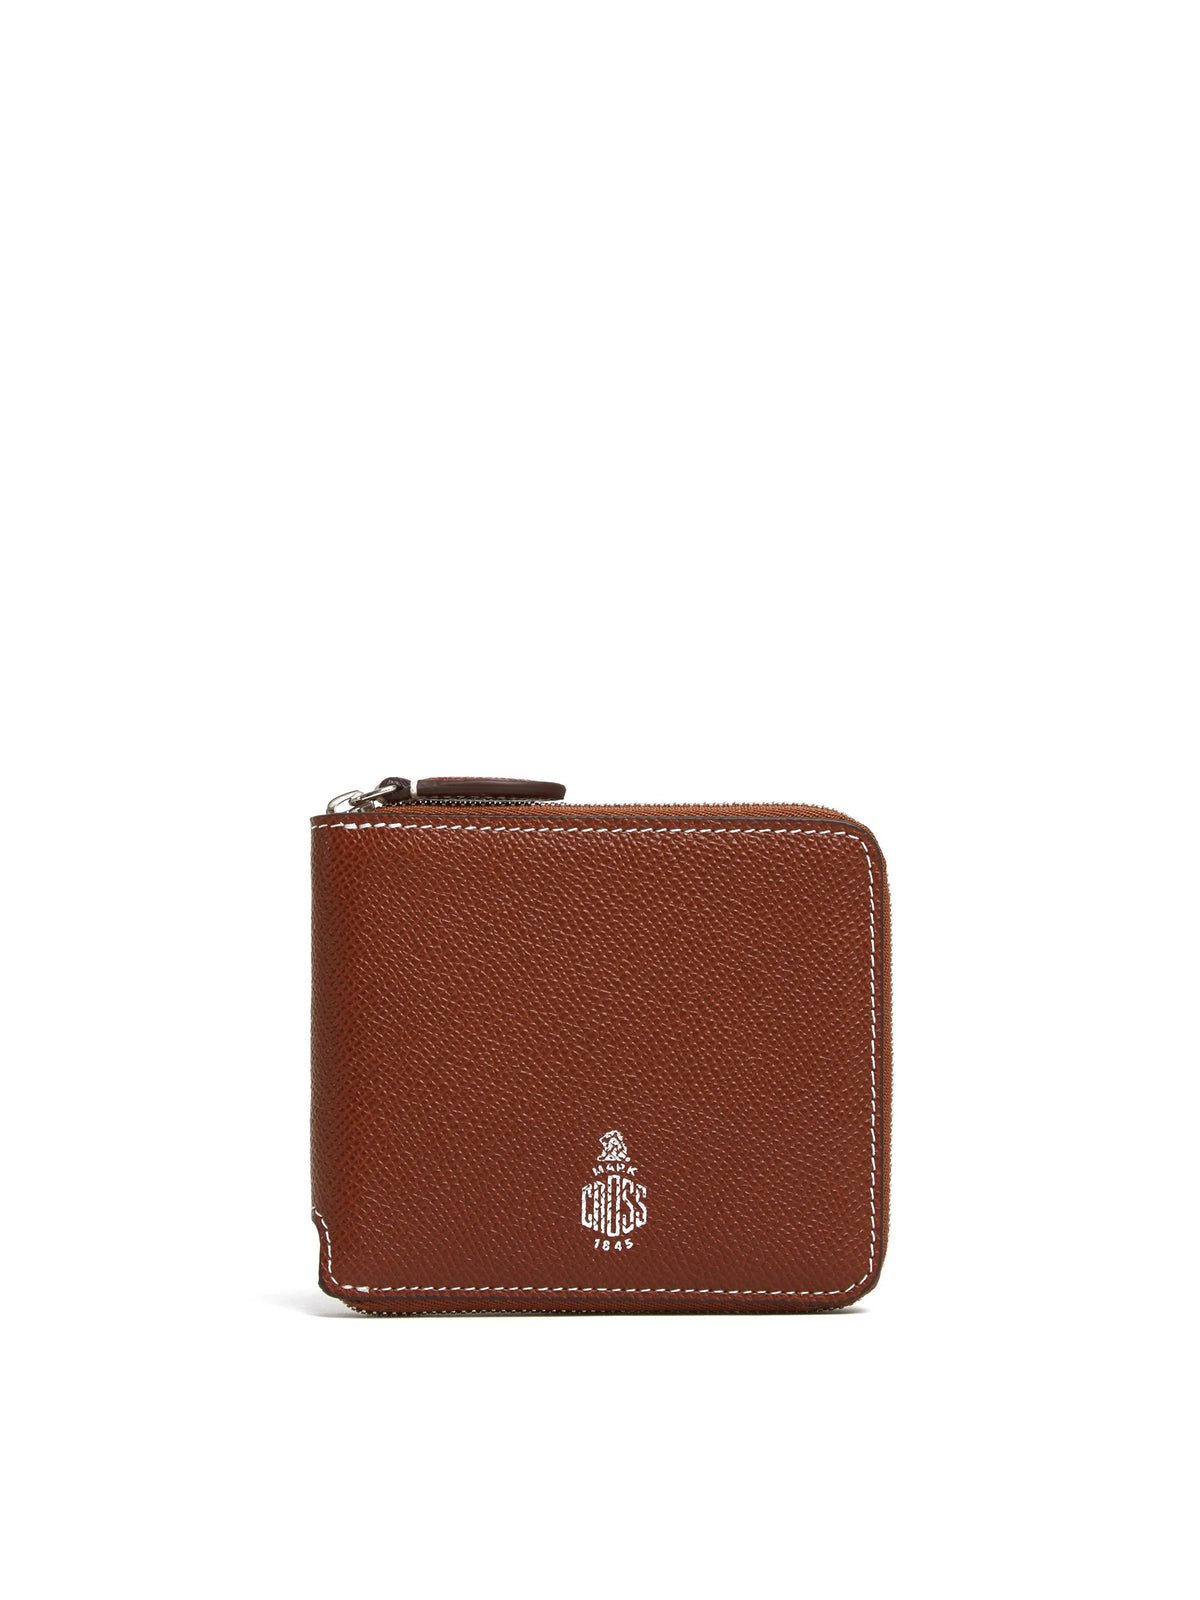 Mark Cross Bi-Fold Leather Zip Wallet Saffiano Acorn Front